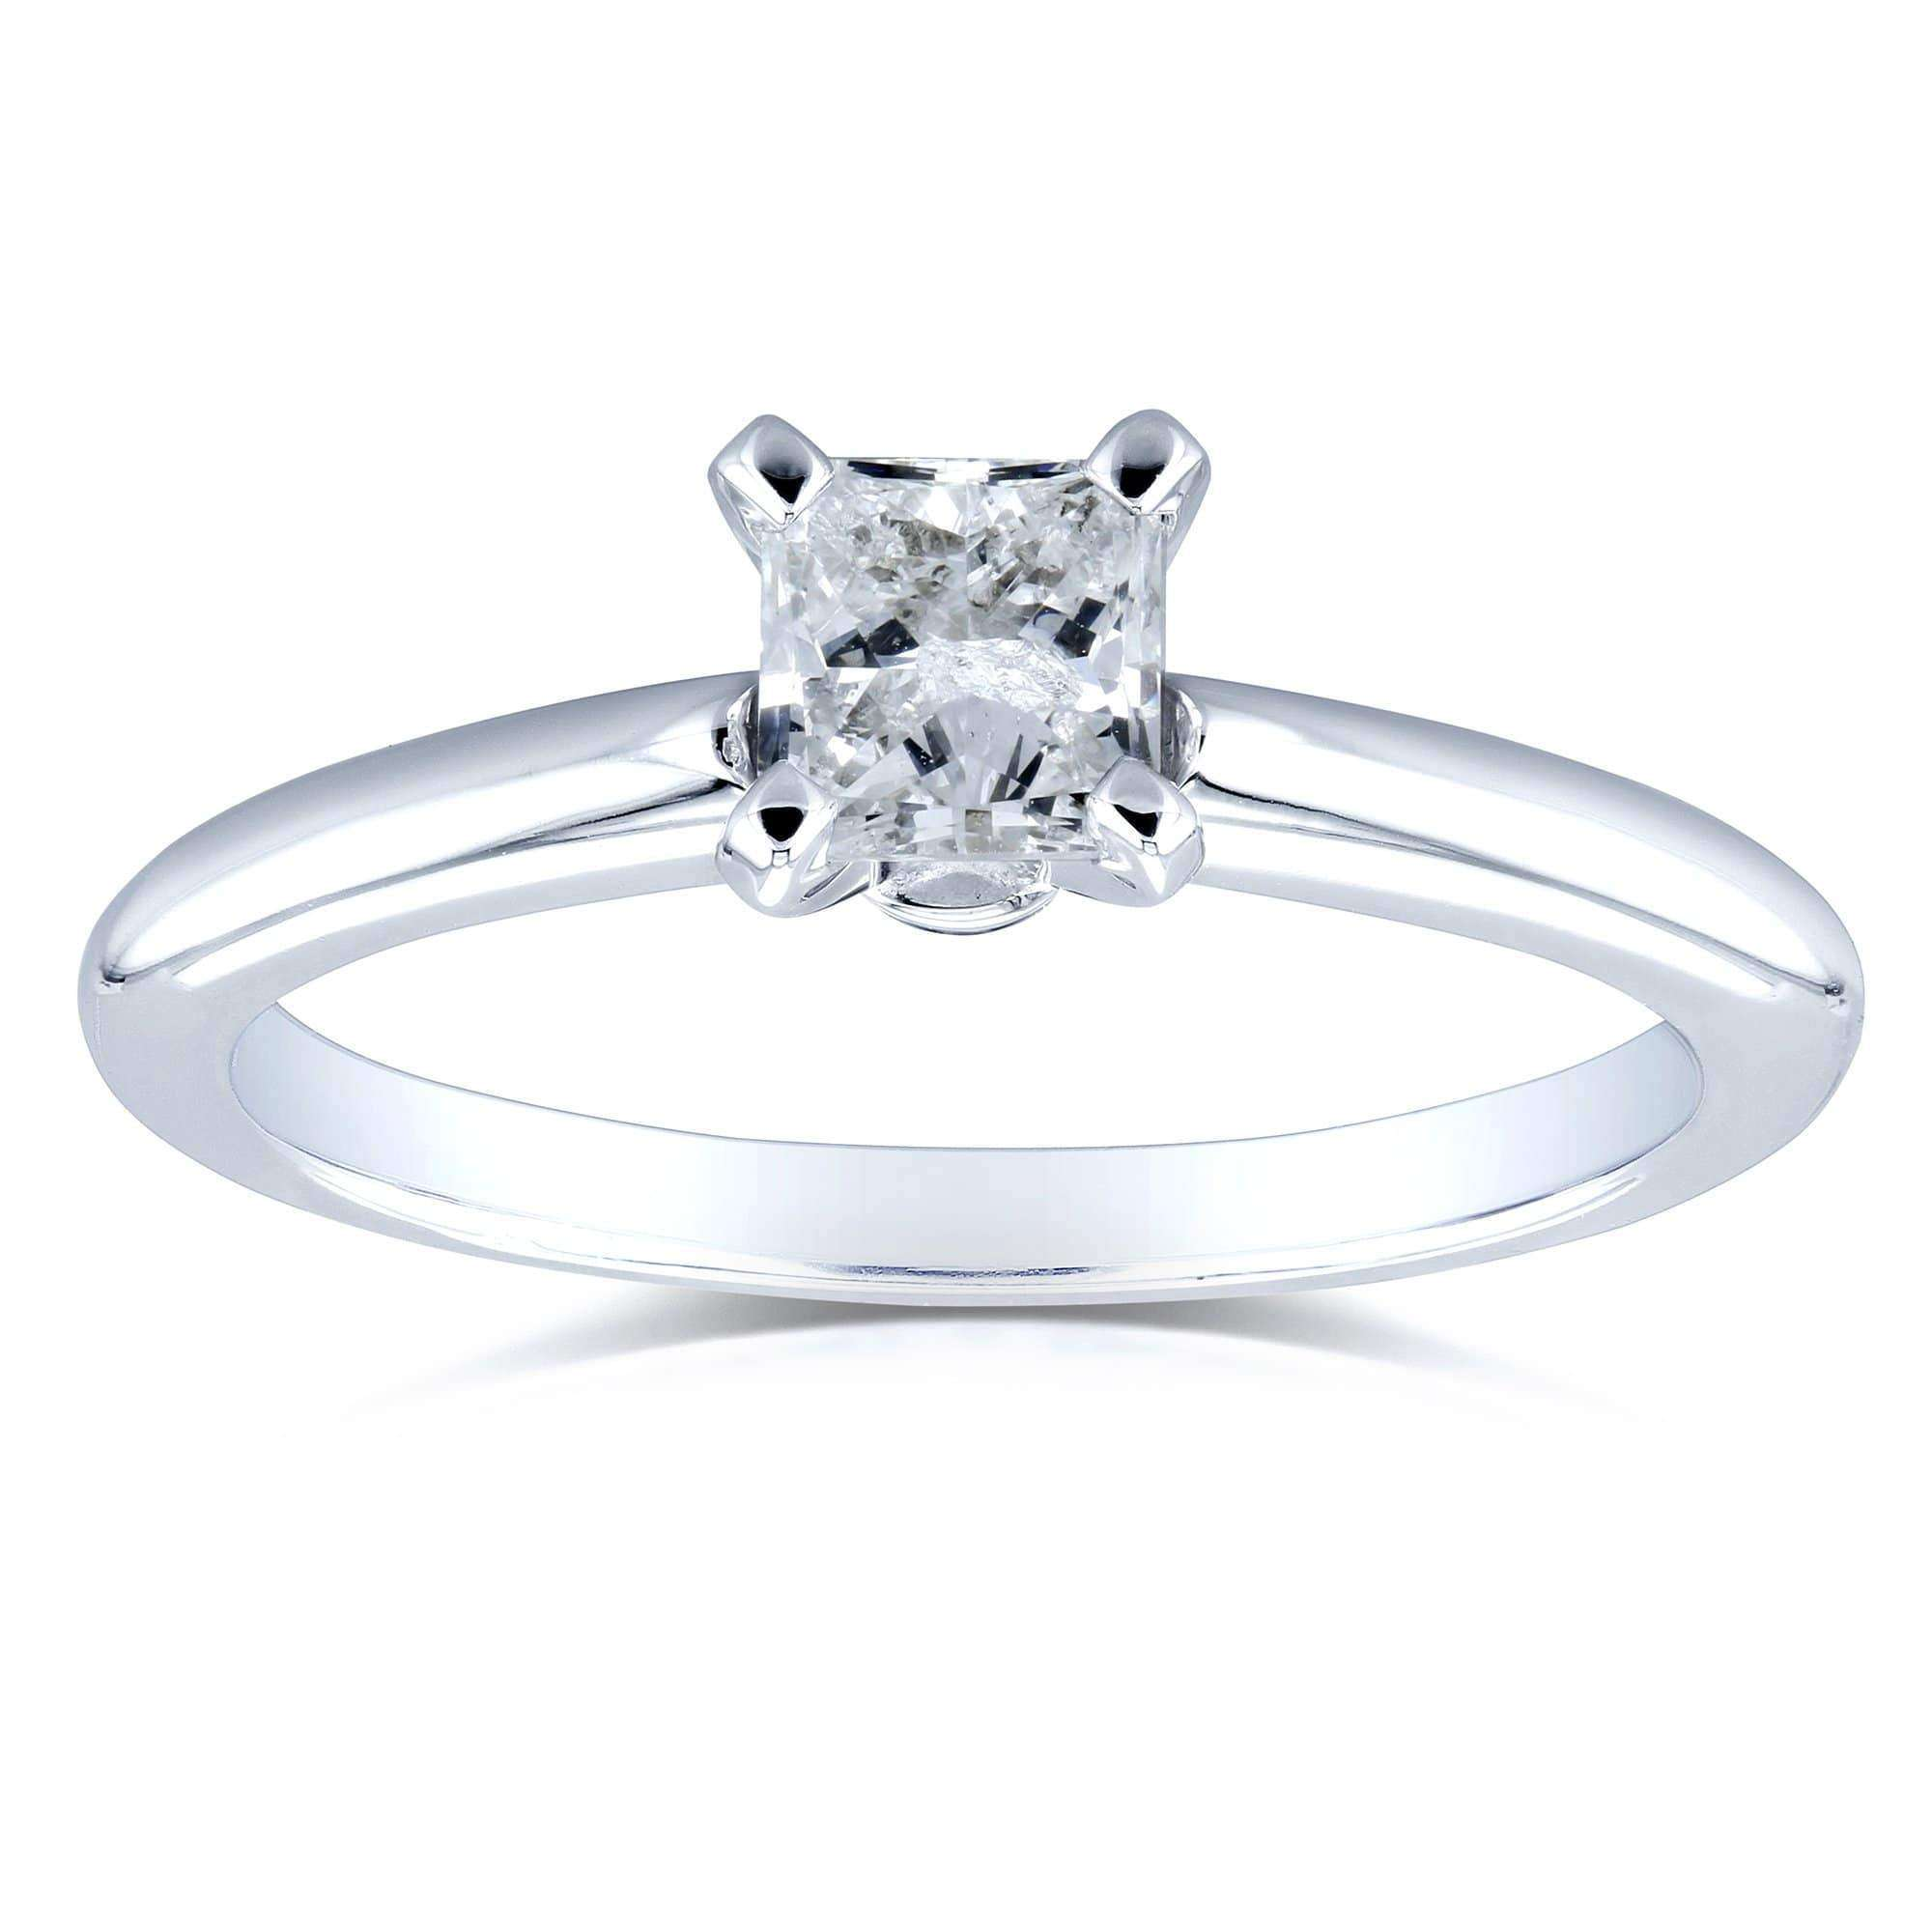 a78273400f70e Solitaire Princess Cut 1/2 Carat Diamond Engagement Ring in 14k White Gold